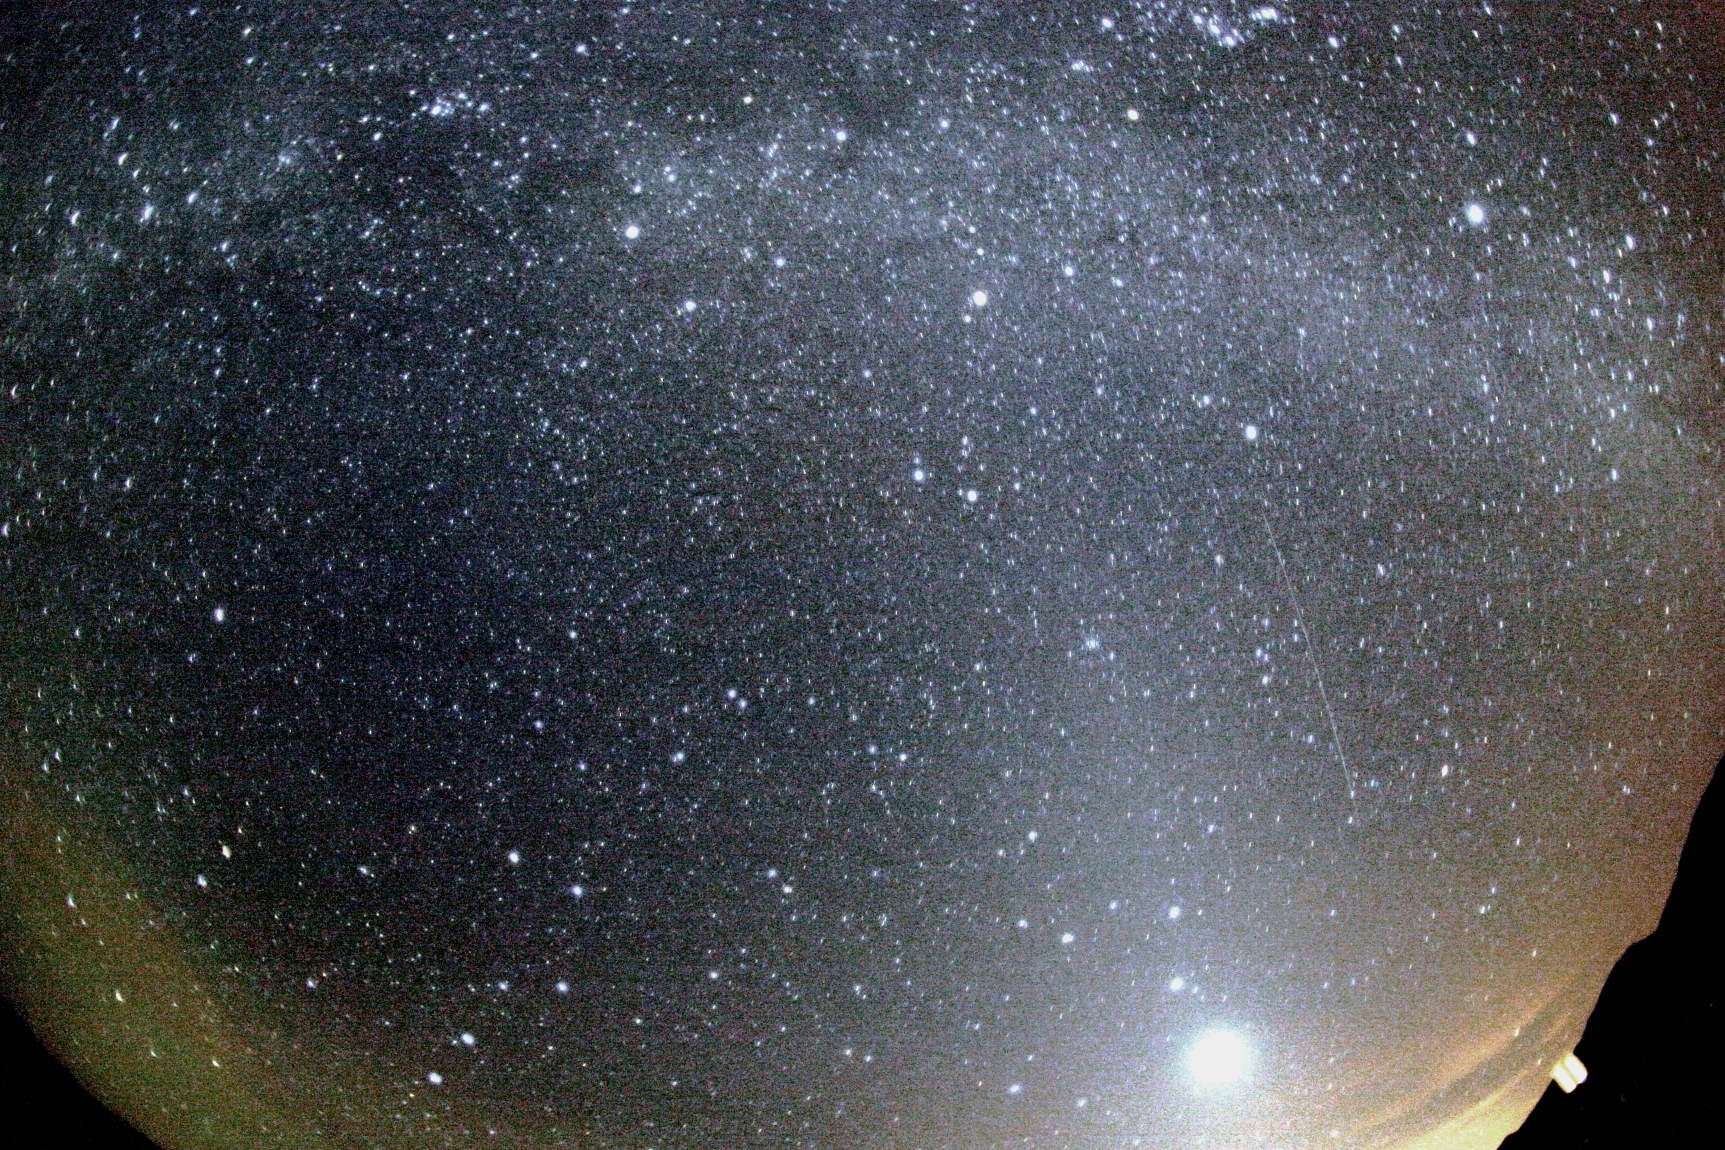 Orionid Meteor Shower Peaks This Weekend: How and When to Watch